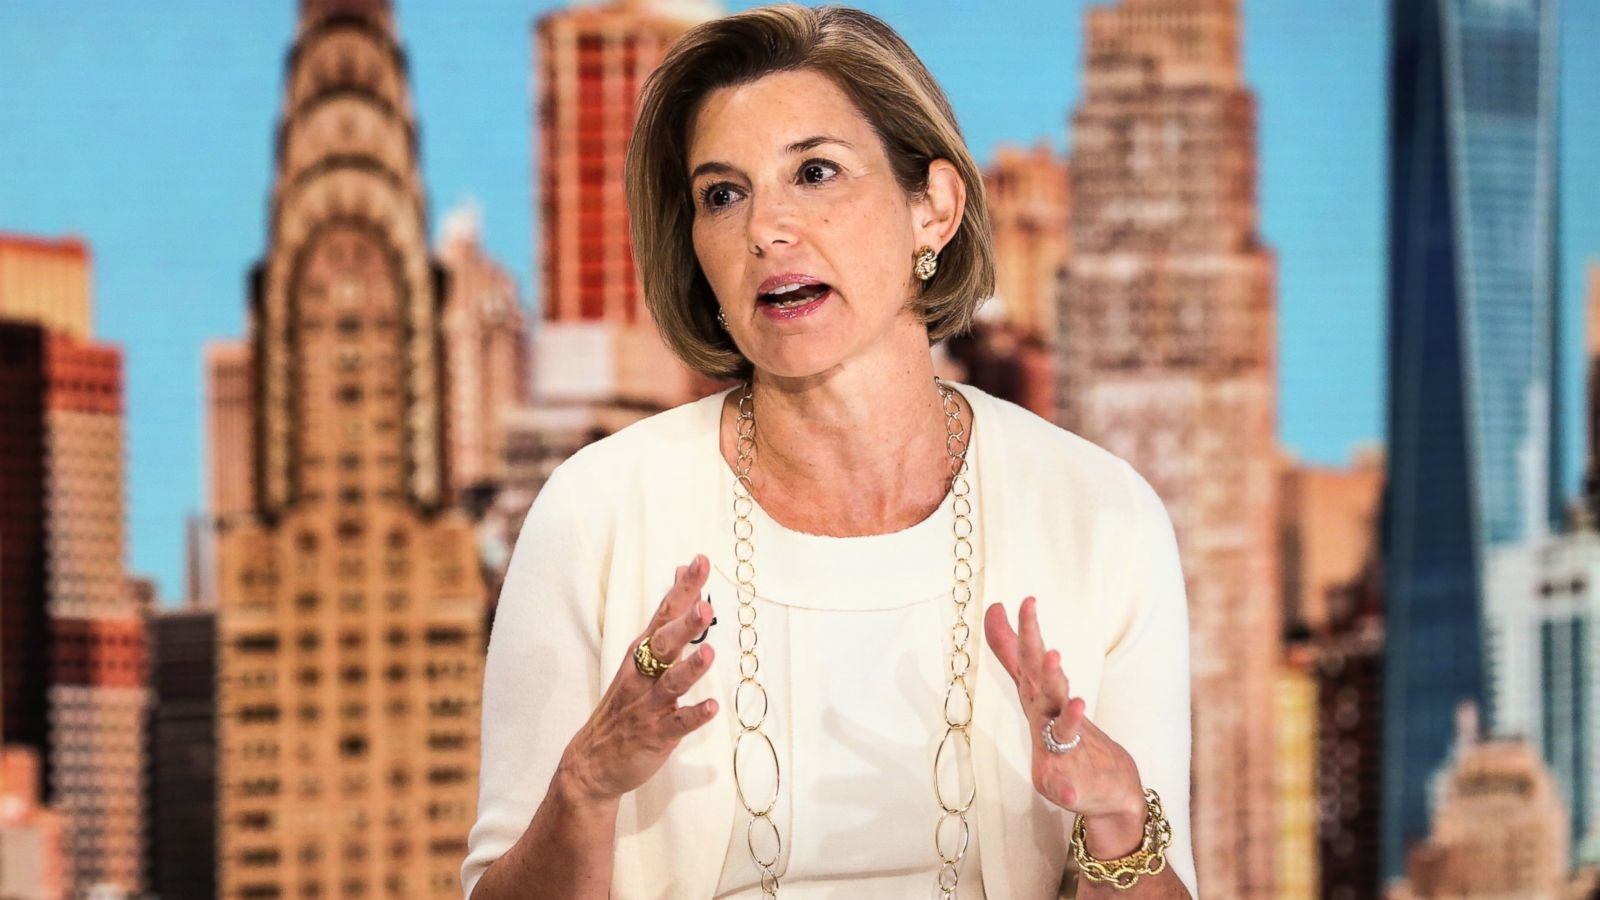 3 Important Facts Every Woman Needs to Know About Investing, as Told by Sallie Krawcheck